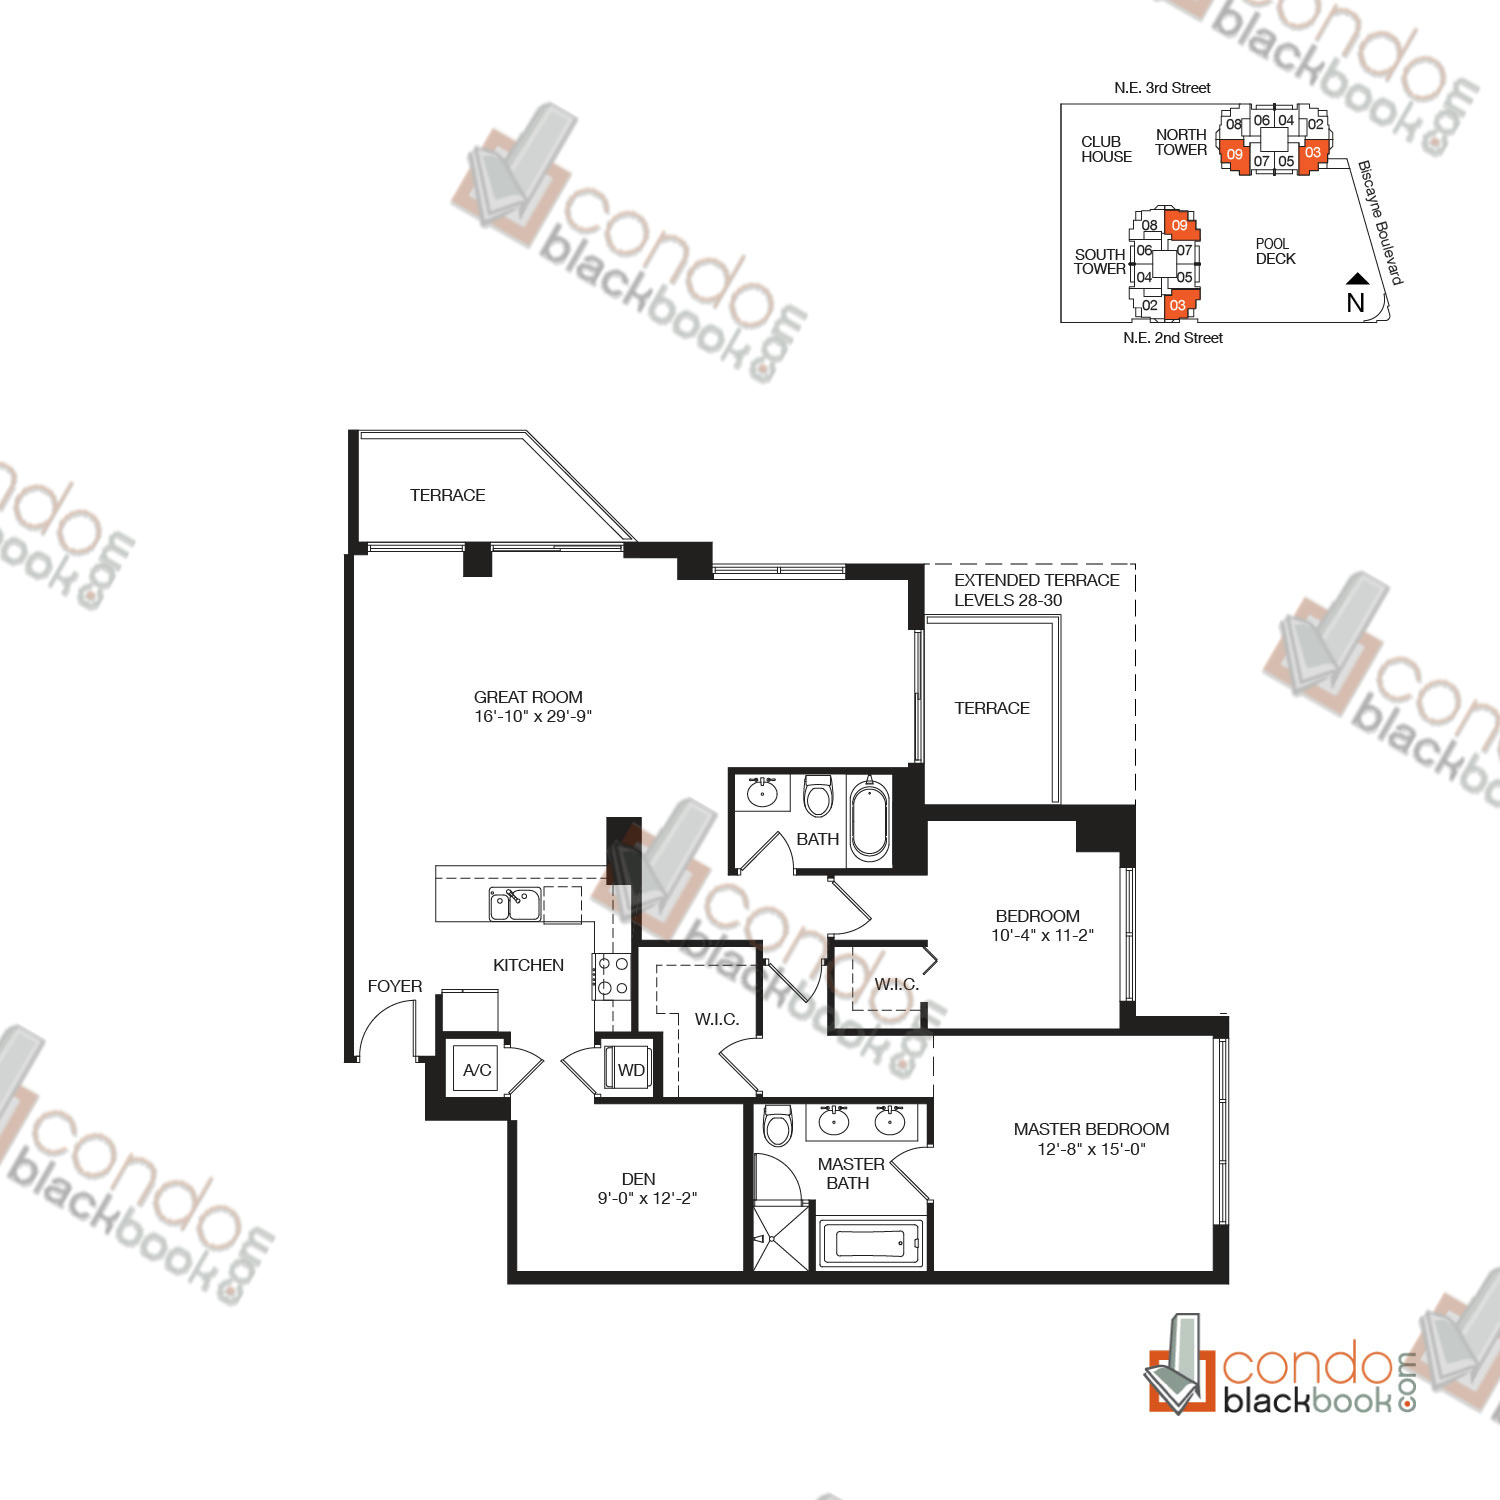 Floor plan for Vizcayne Downtown Miami Miami, model RESIDENCE 6, line 03, 09, 2/2+DEN bedrooms, 1,515 sq ft